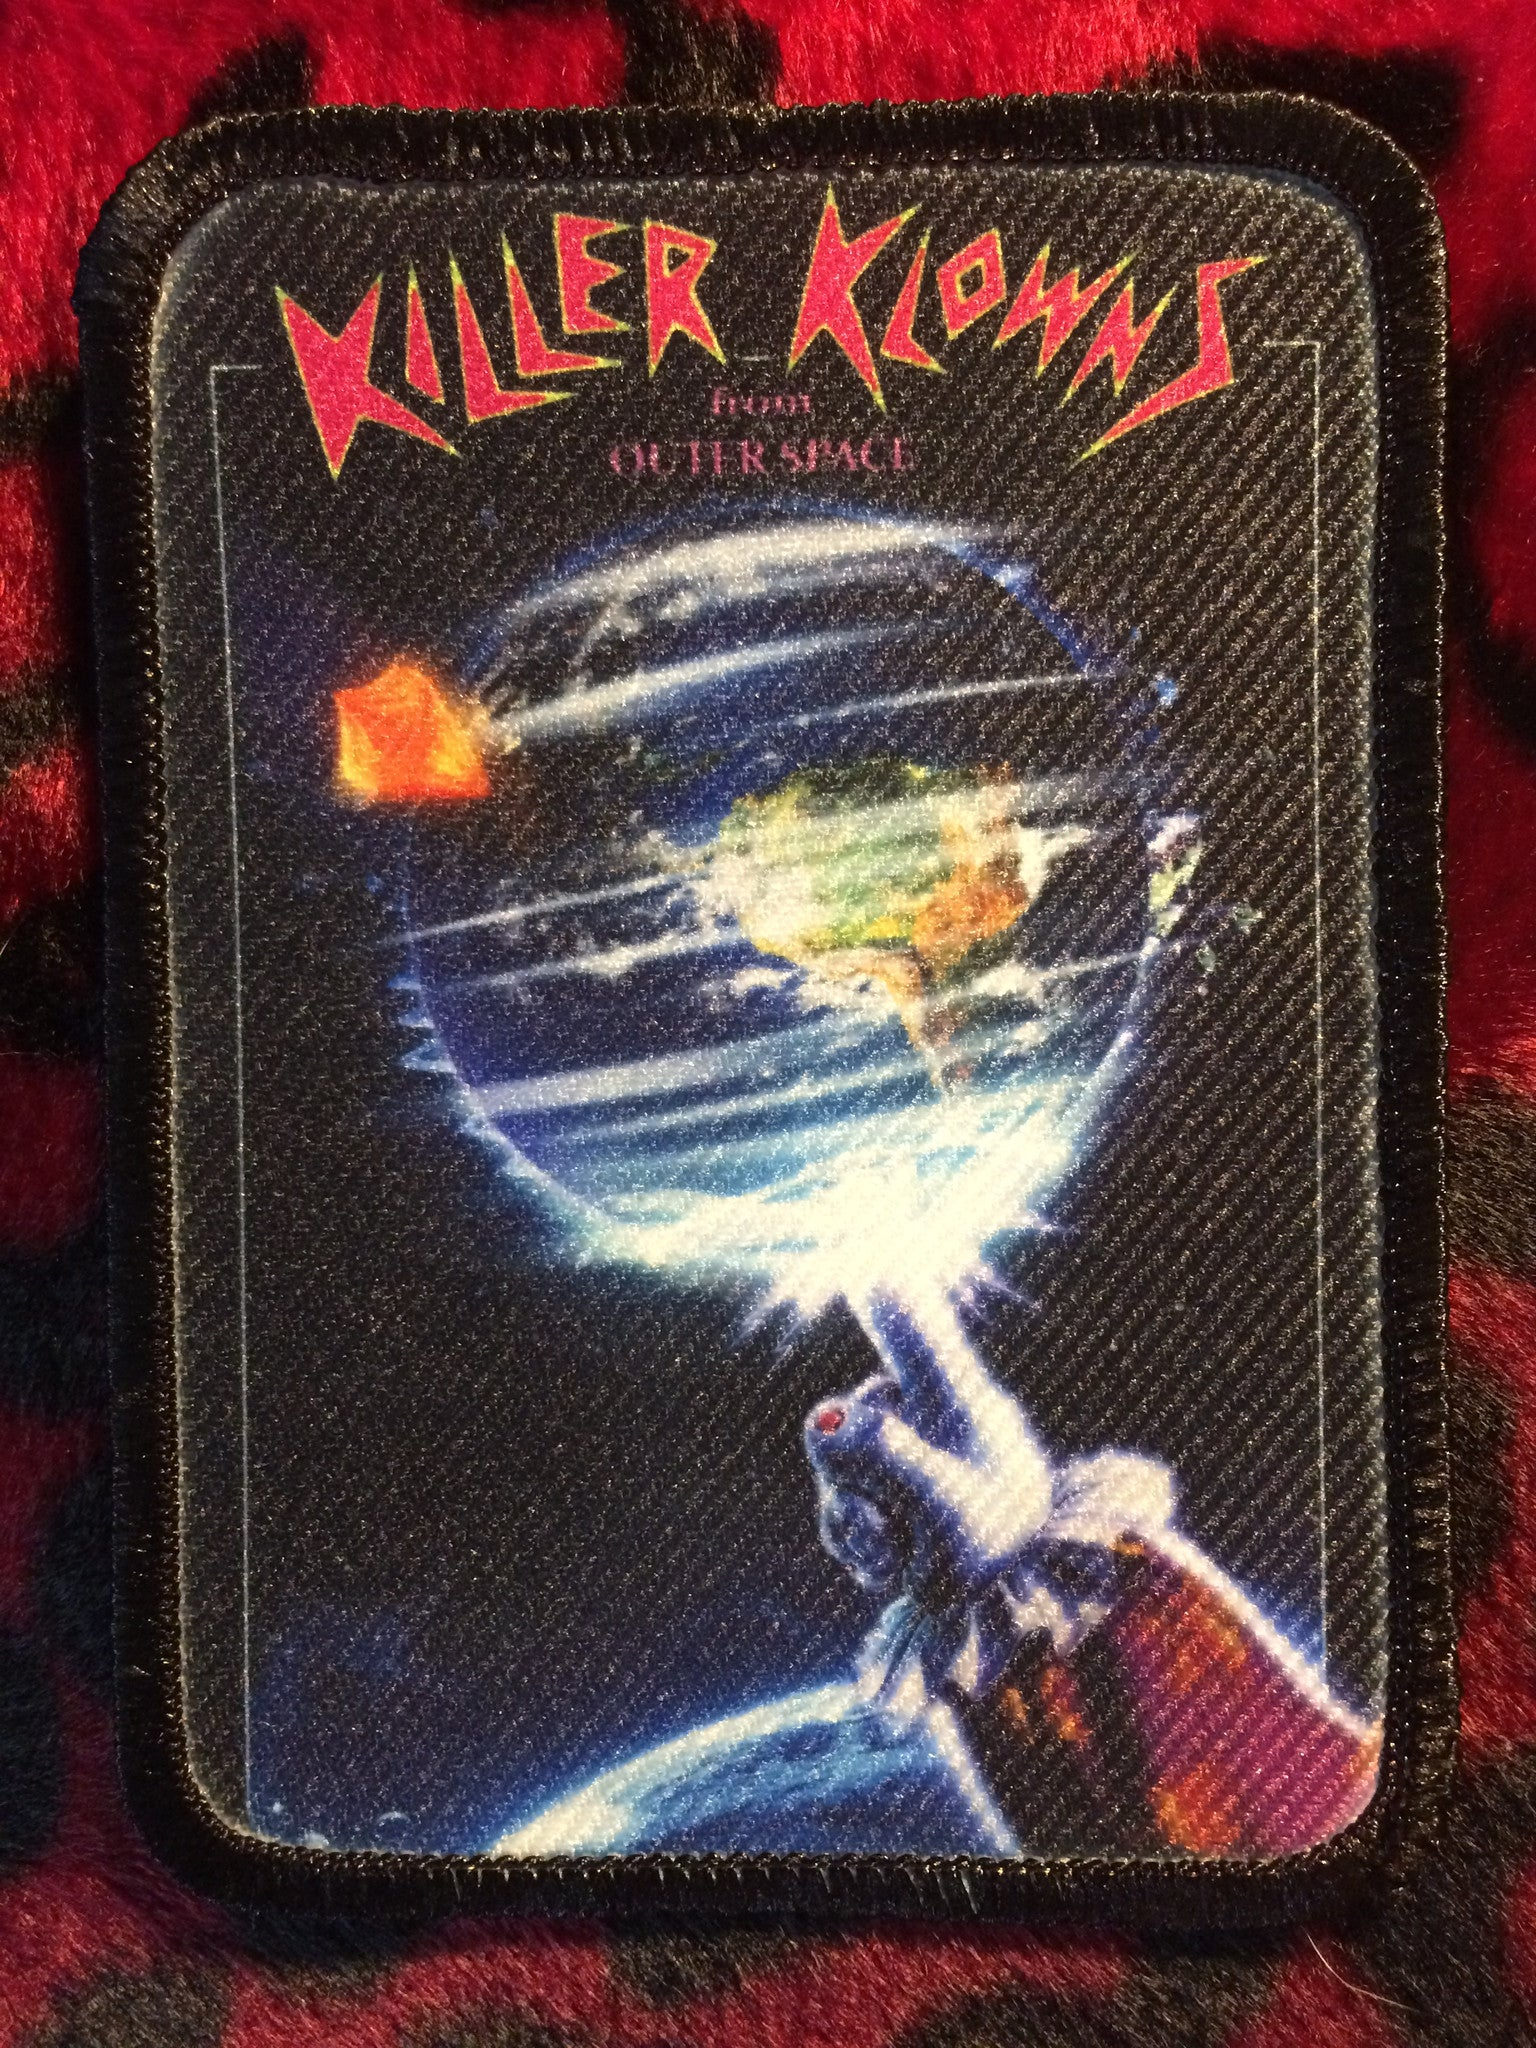 Killer Klowns From Outer Space Patch